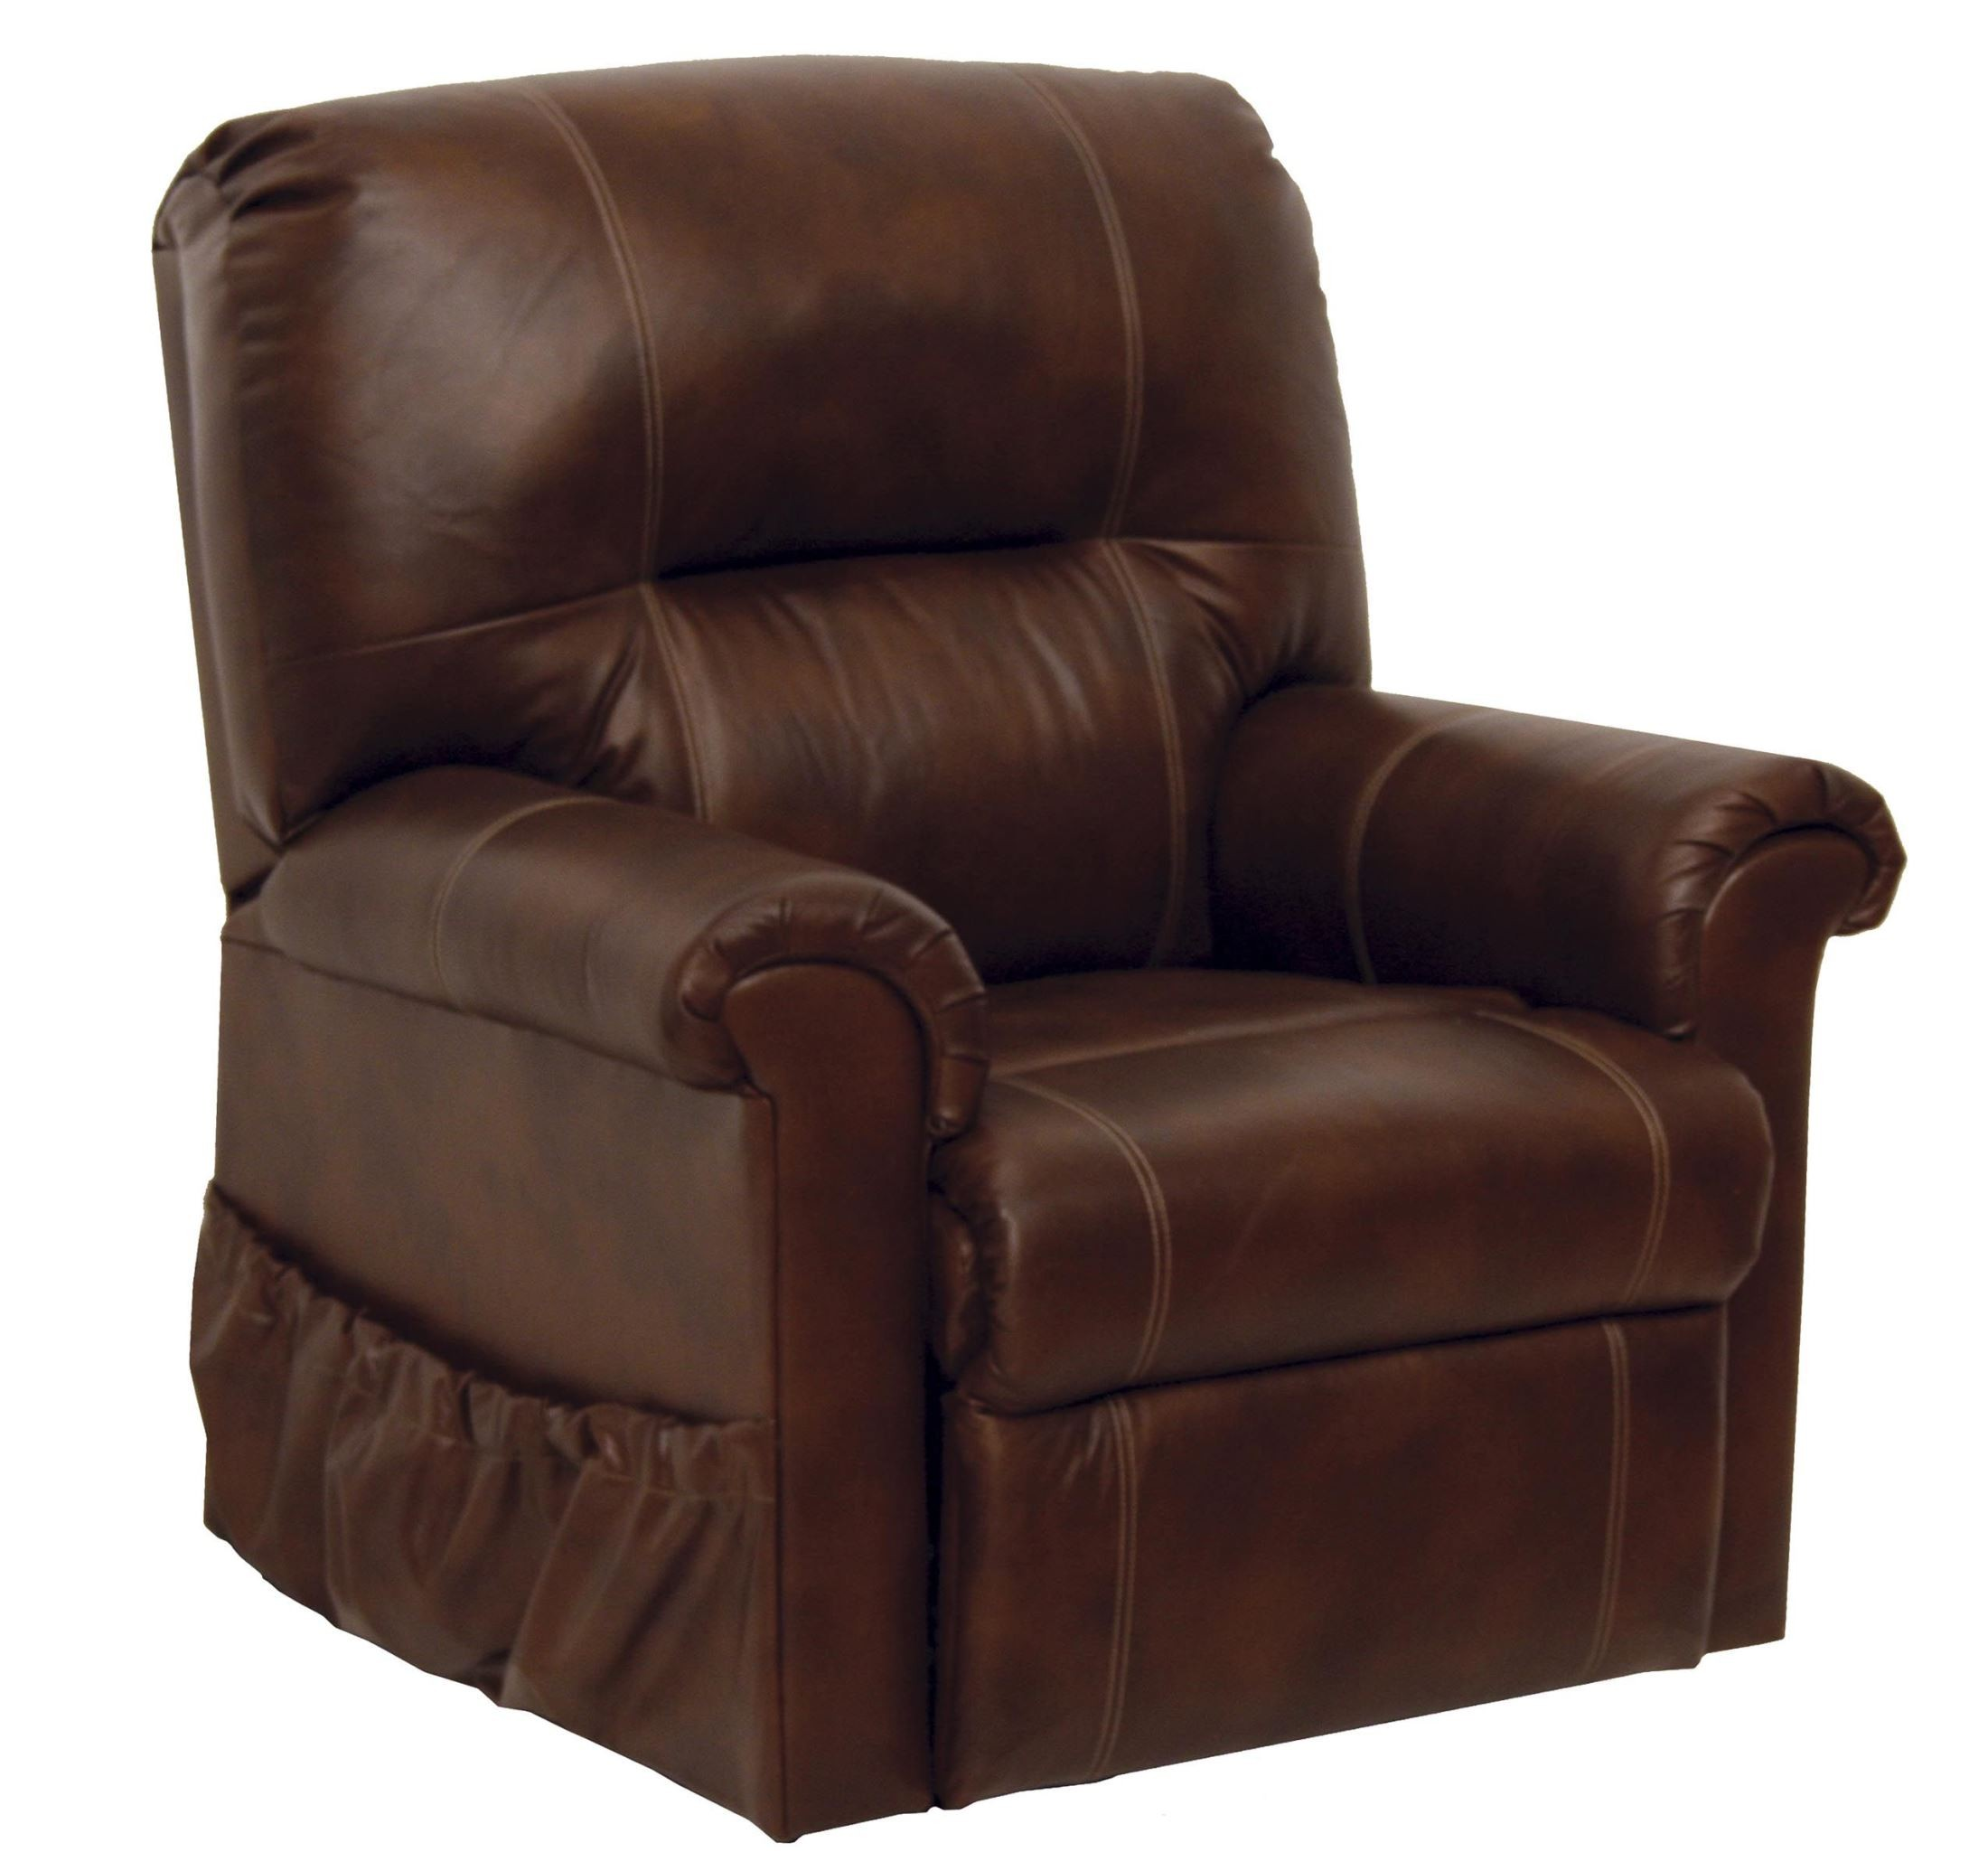 vintage tobacco leather power lift chair from catnapper